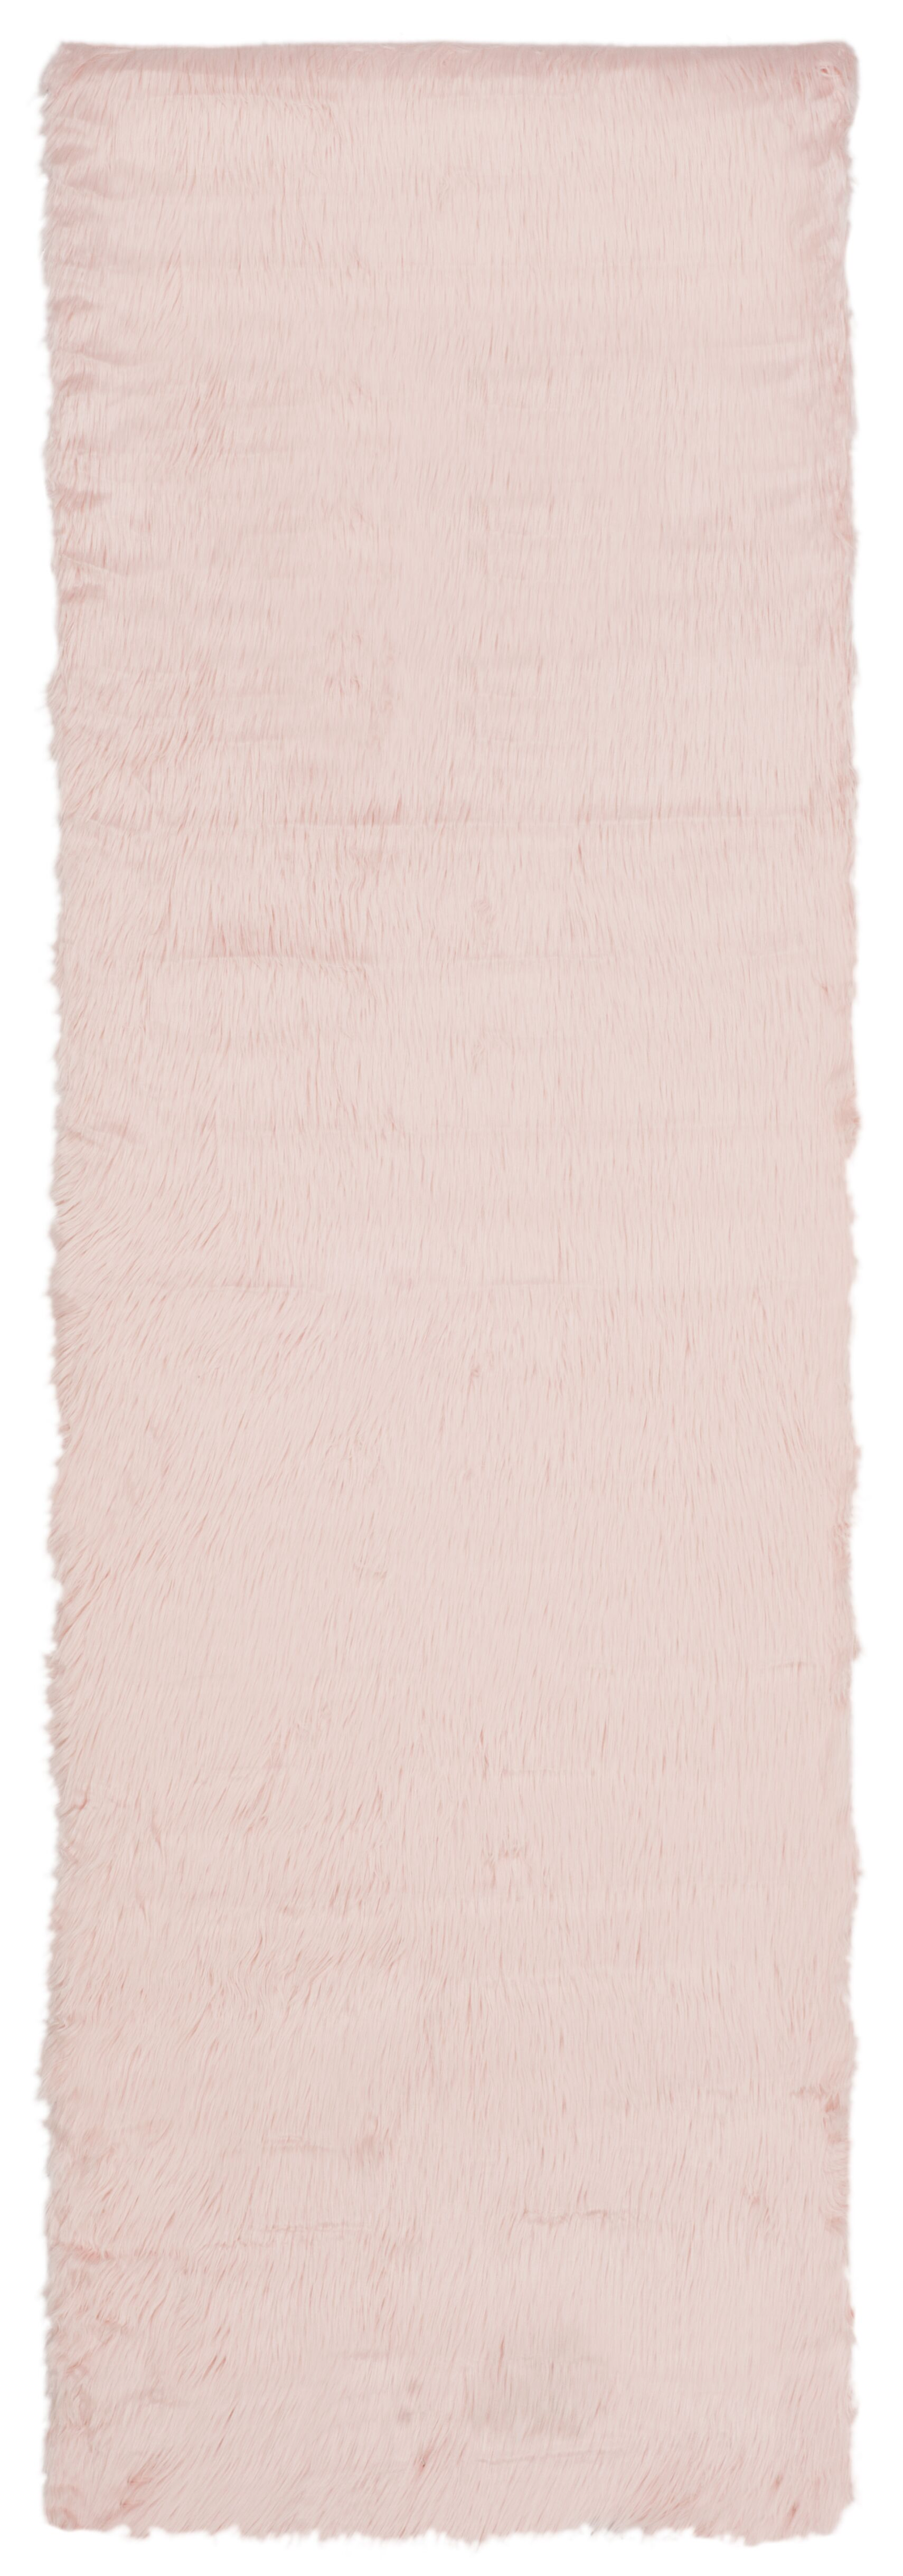 Anthony  Fur Pink Area Rug Rug Size: Runner 2'6